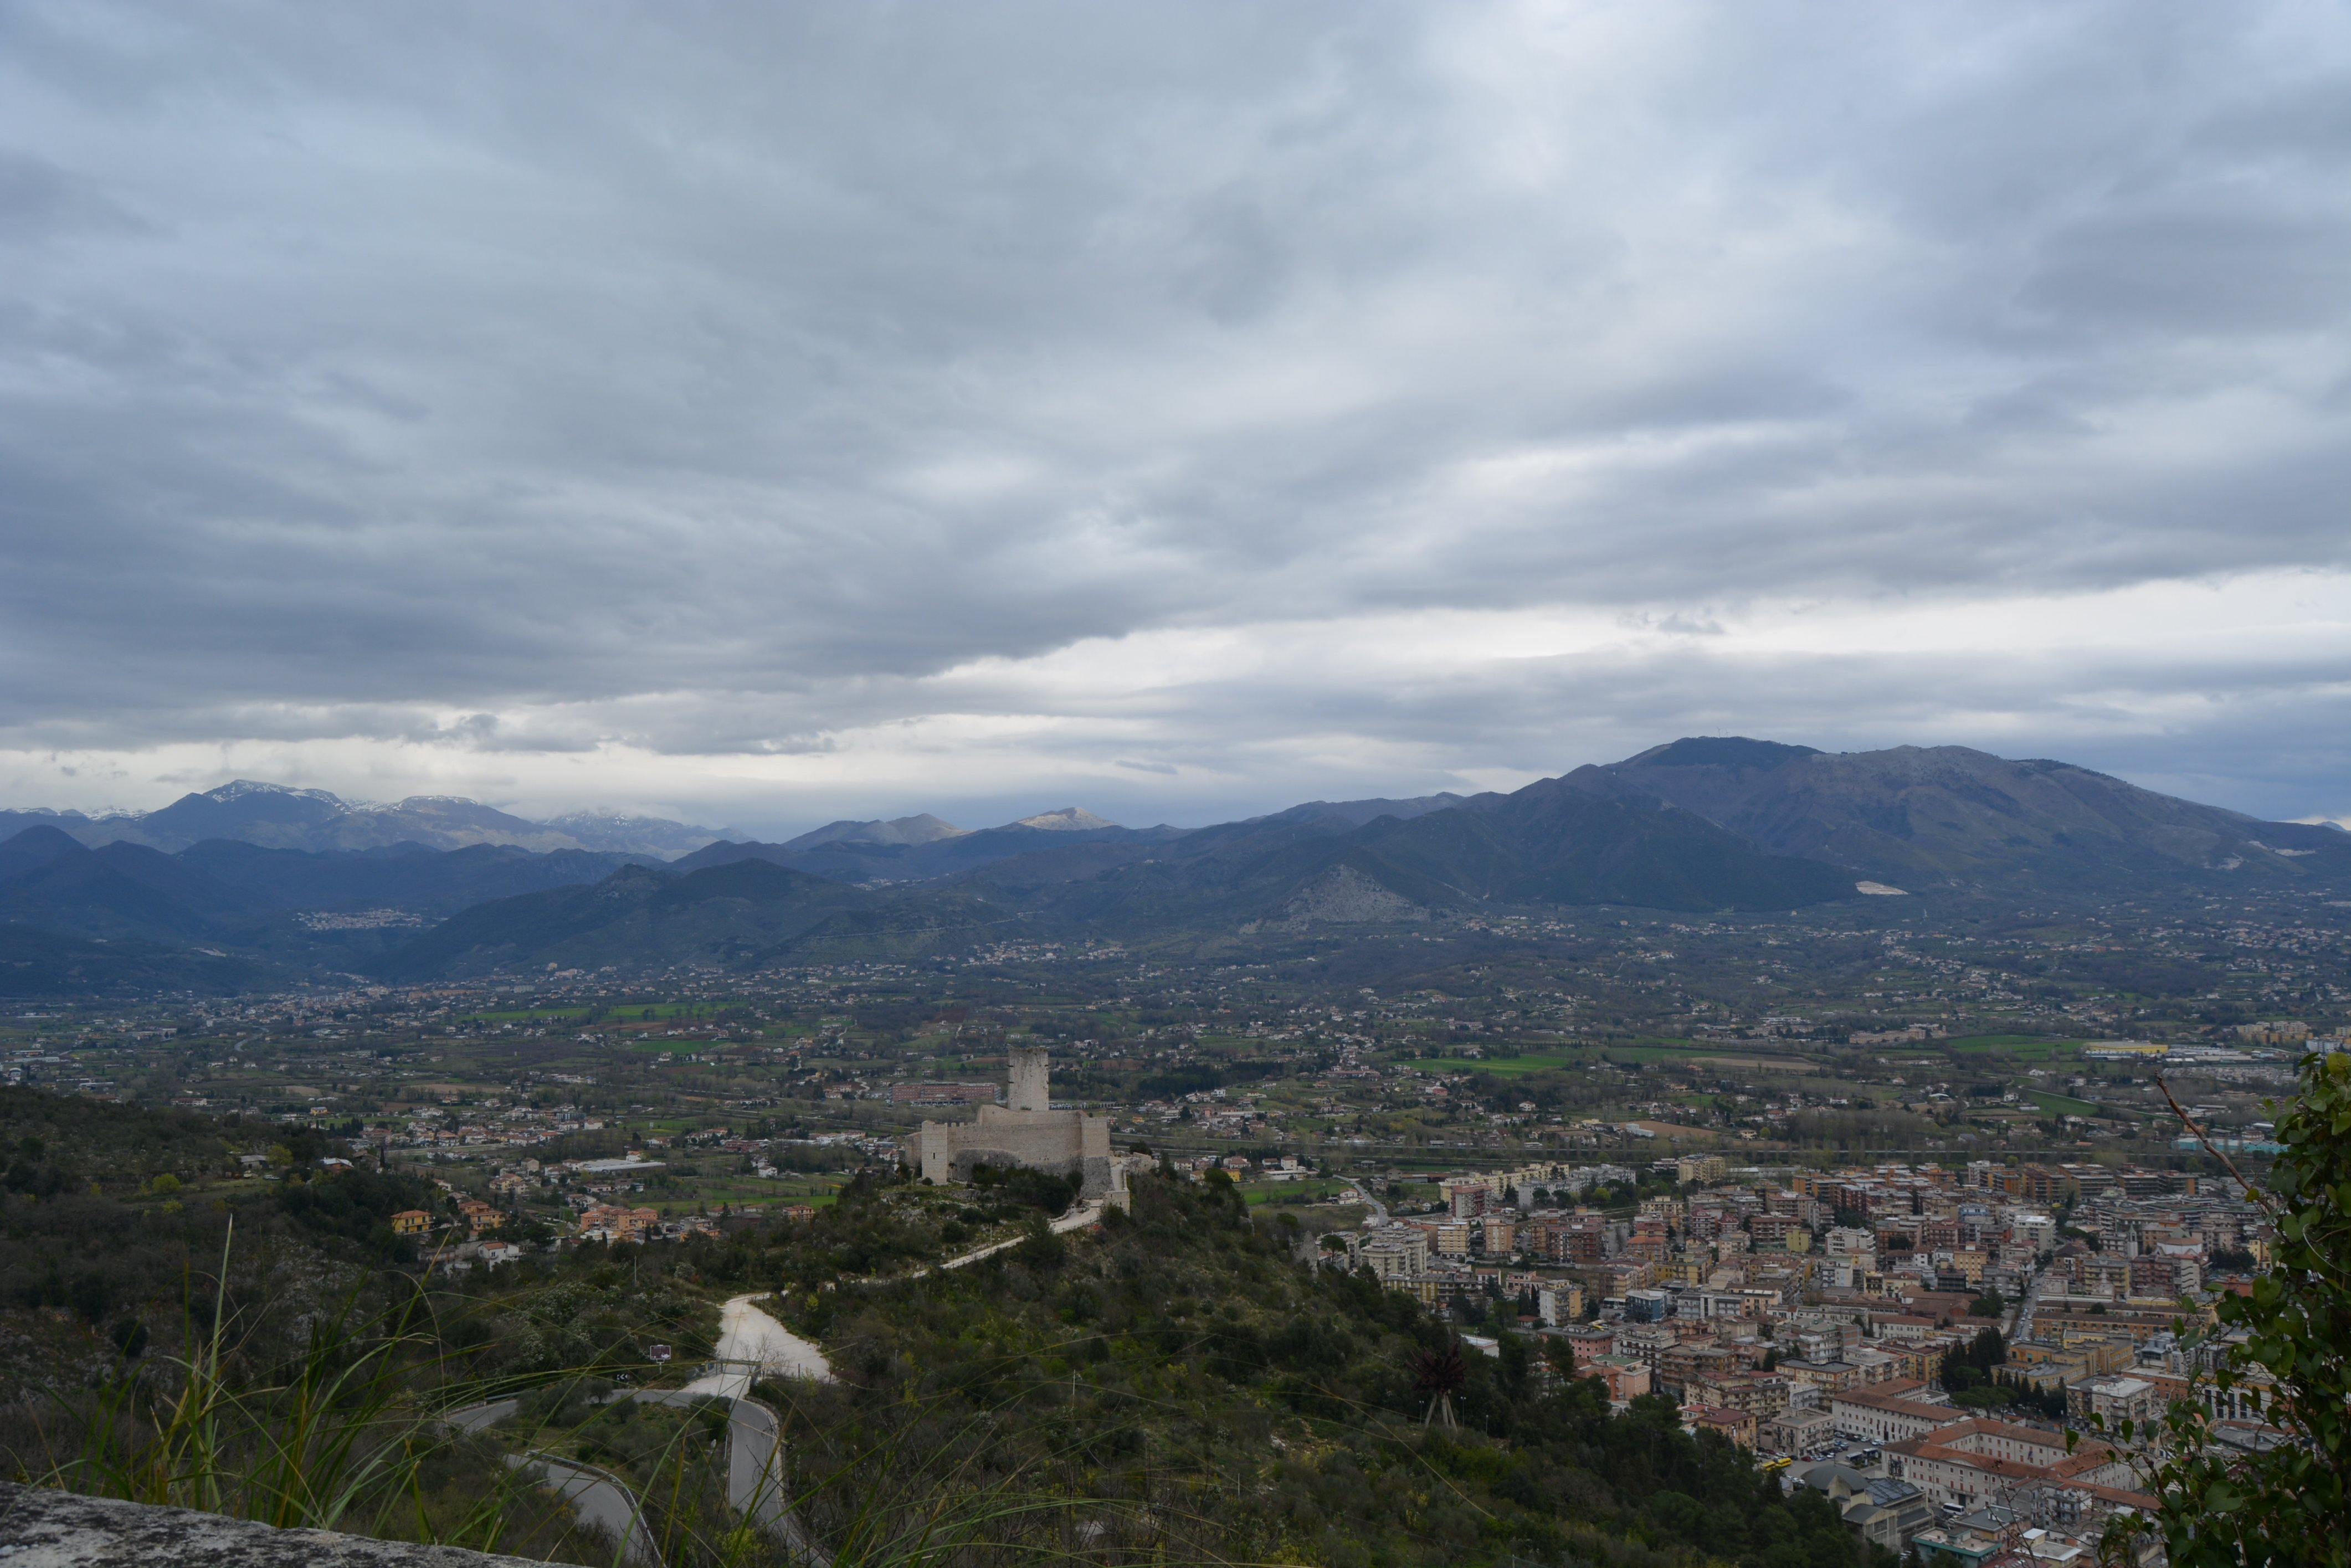 From Mount Cassino